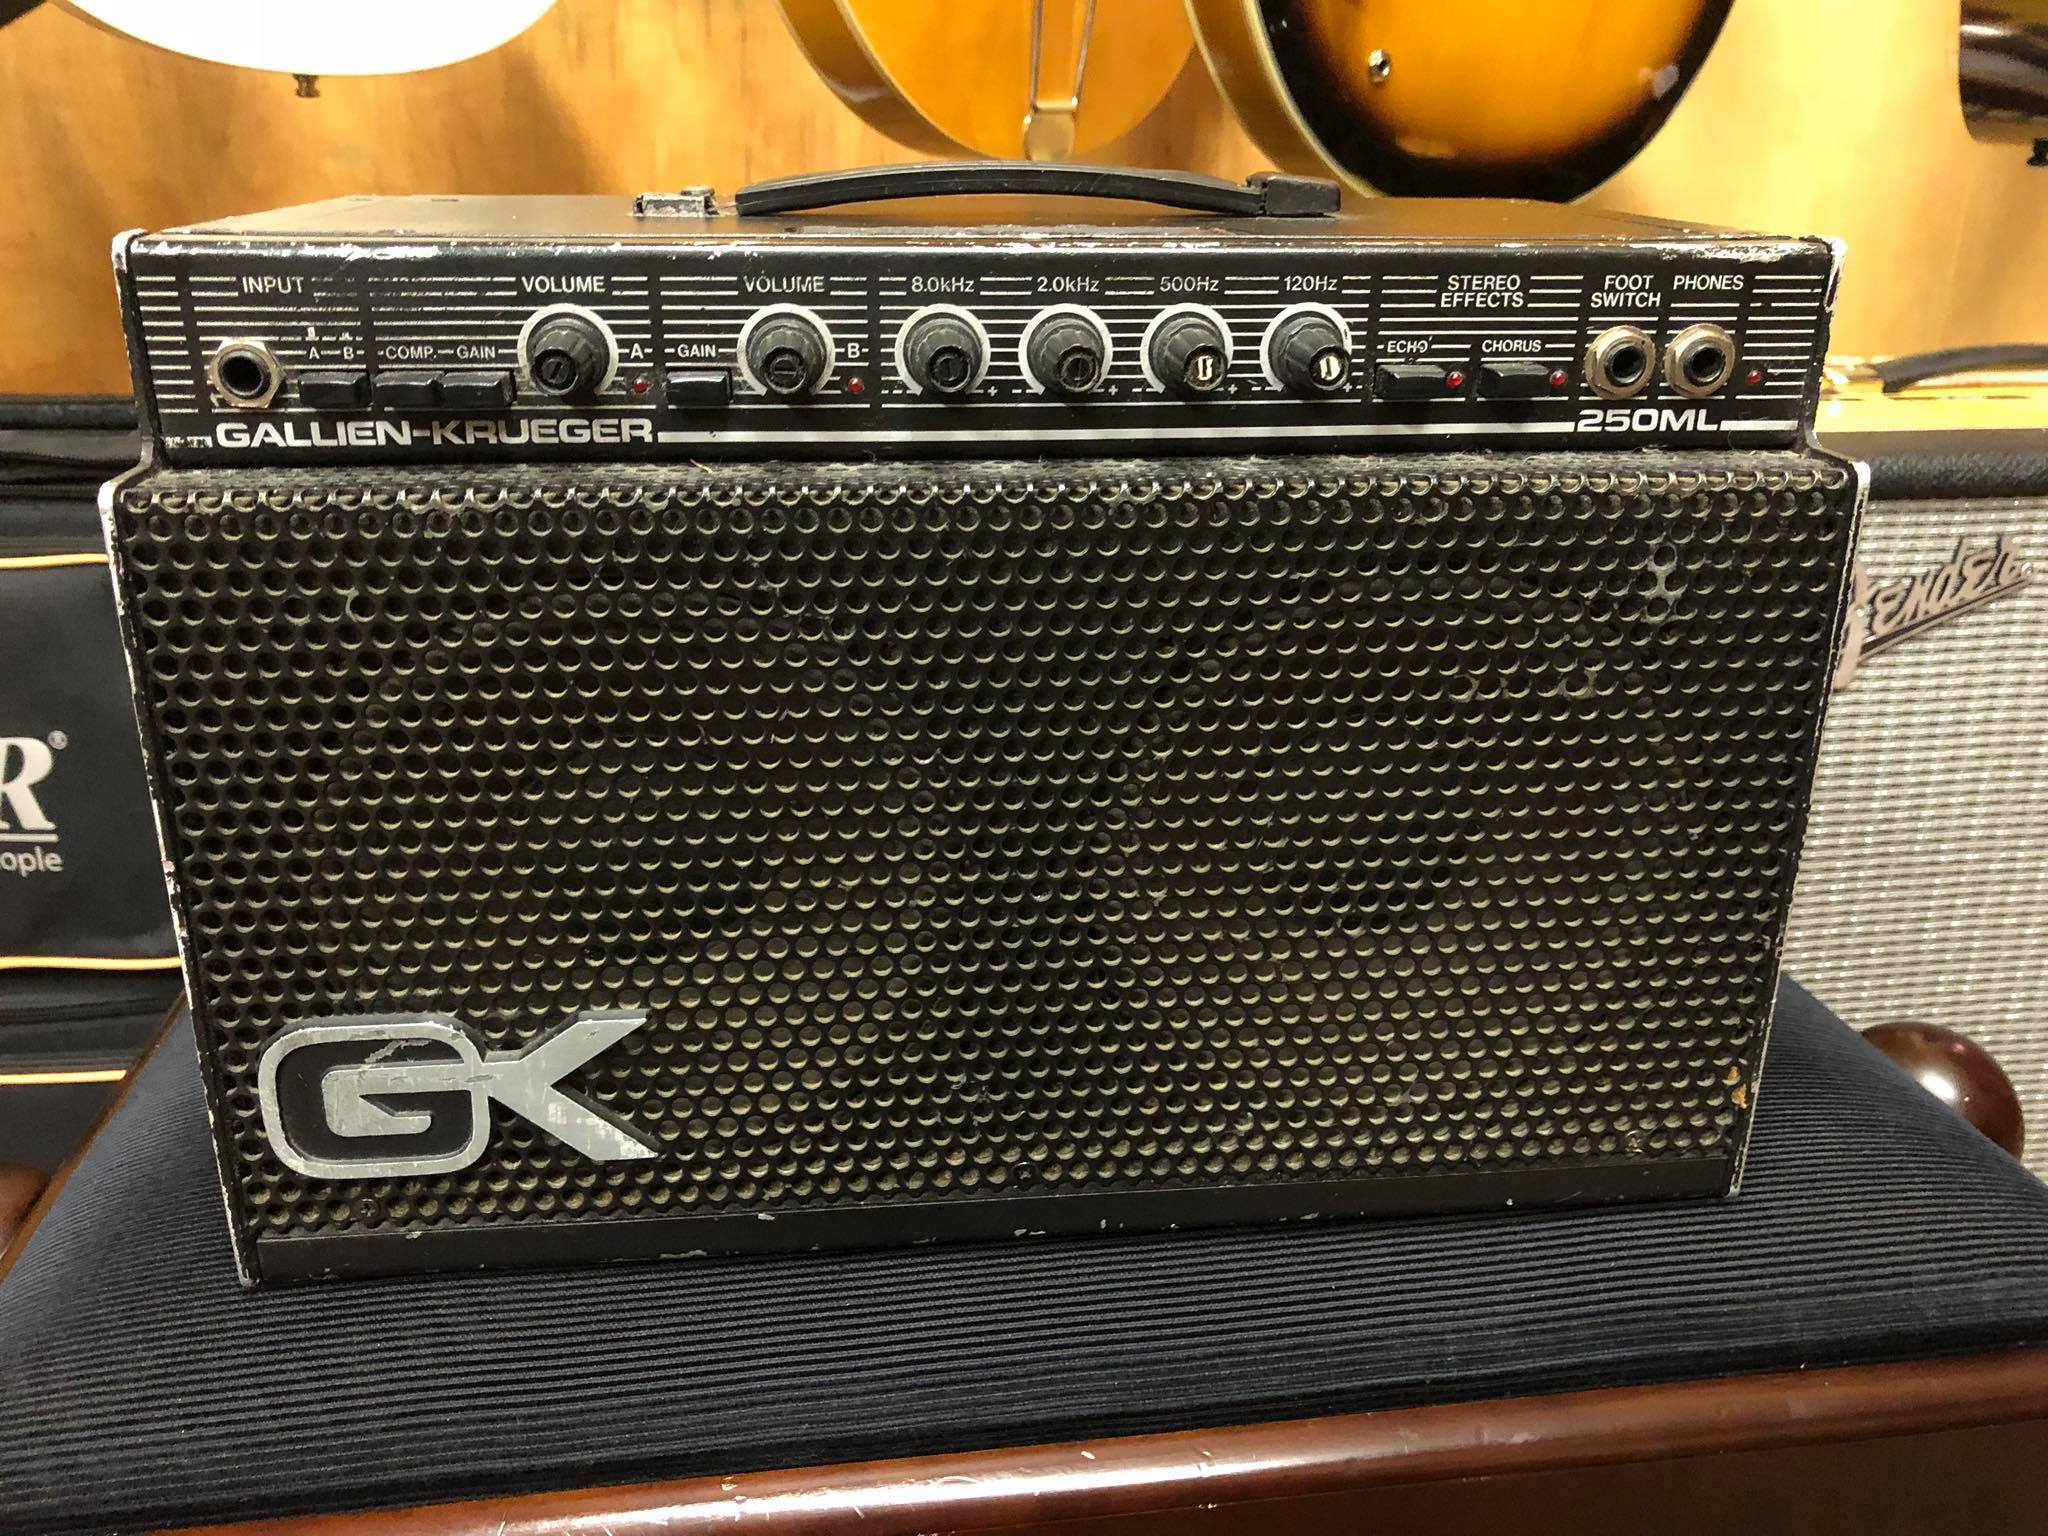 Gallien & Krueger 250ML